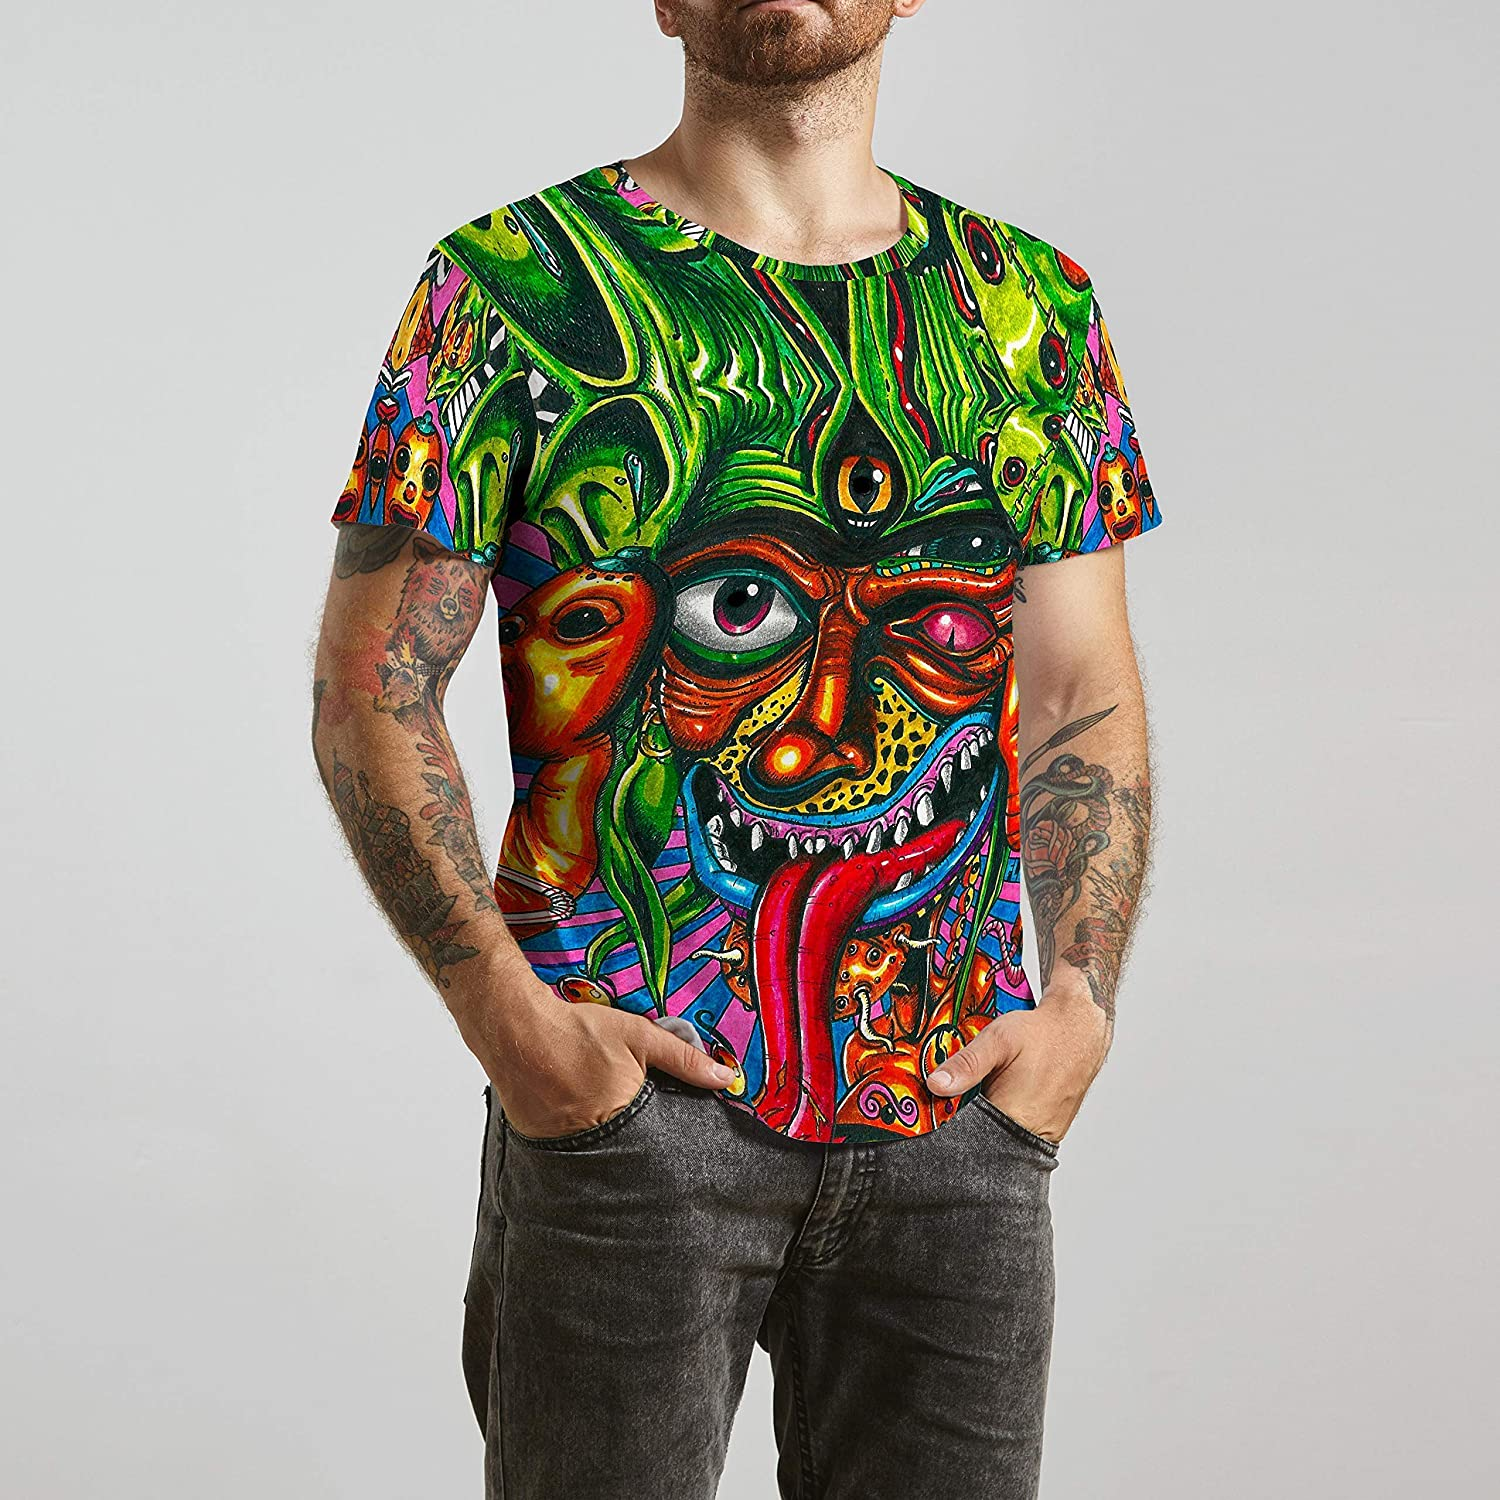 WolfCases Acid Demon T-Shirt for Festival Burning Man Cool Clothing Japanese Oni Tee for Men Unisex Large Sizes Trippy Psychedelic Design GO1169